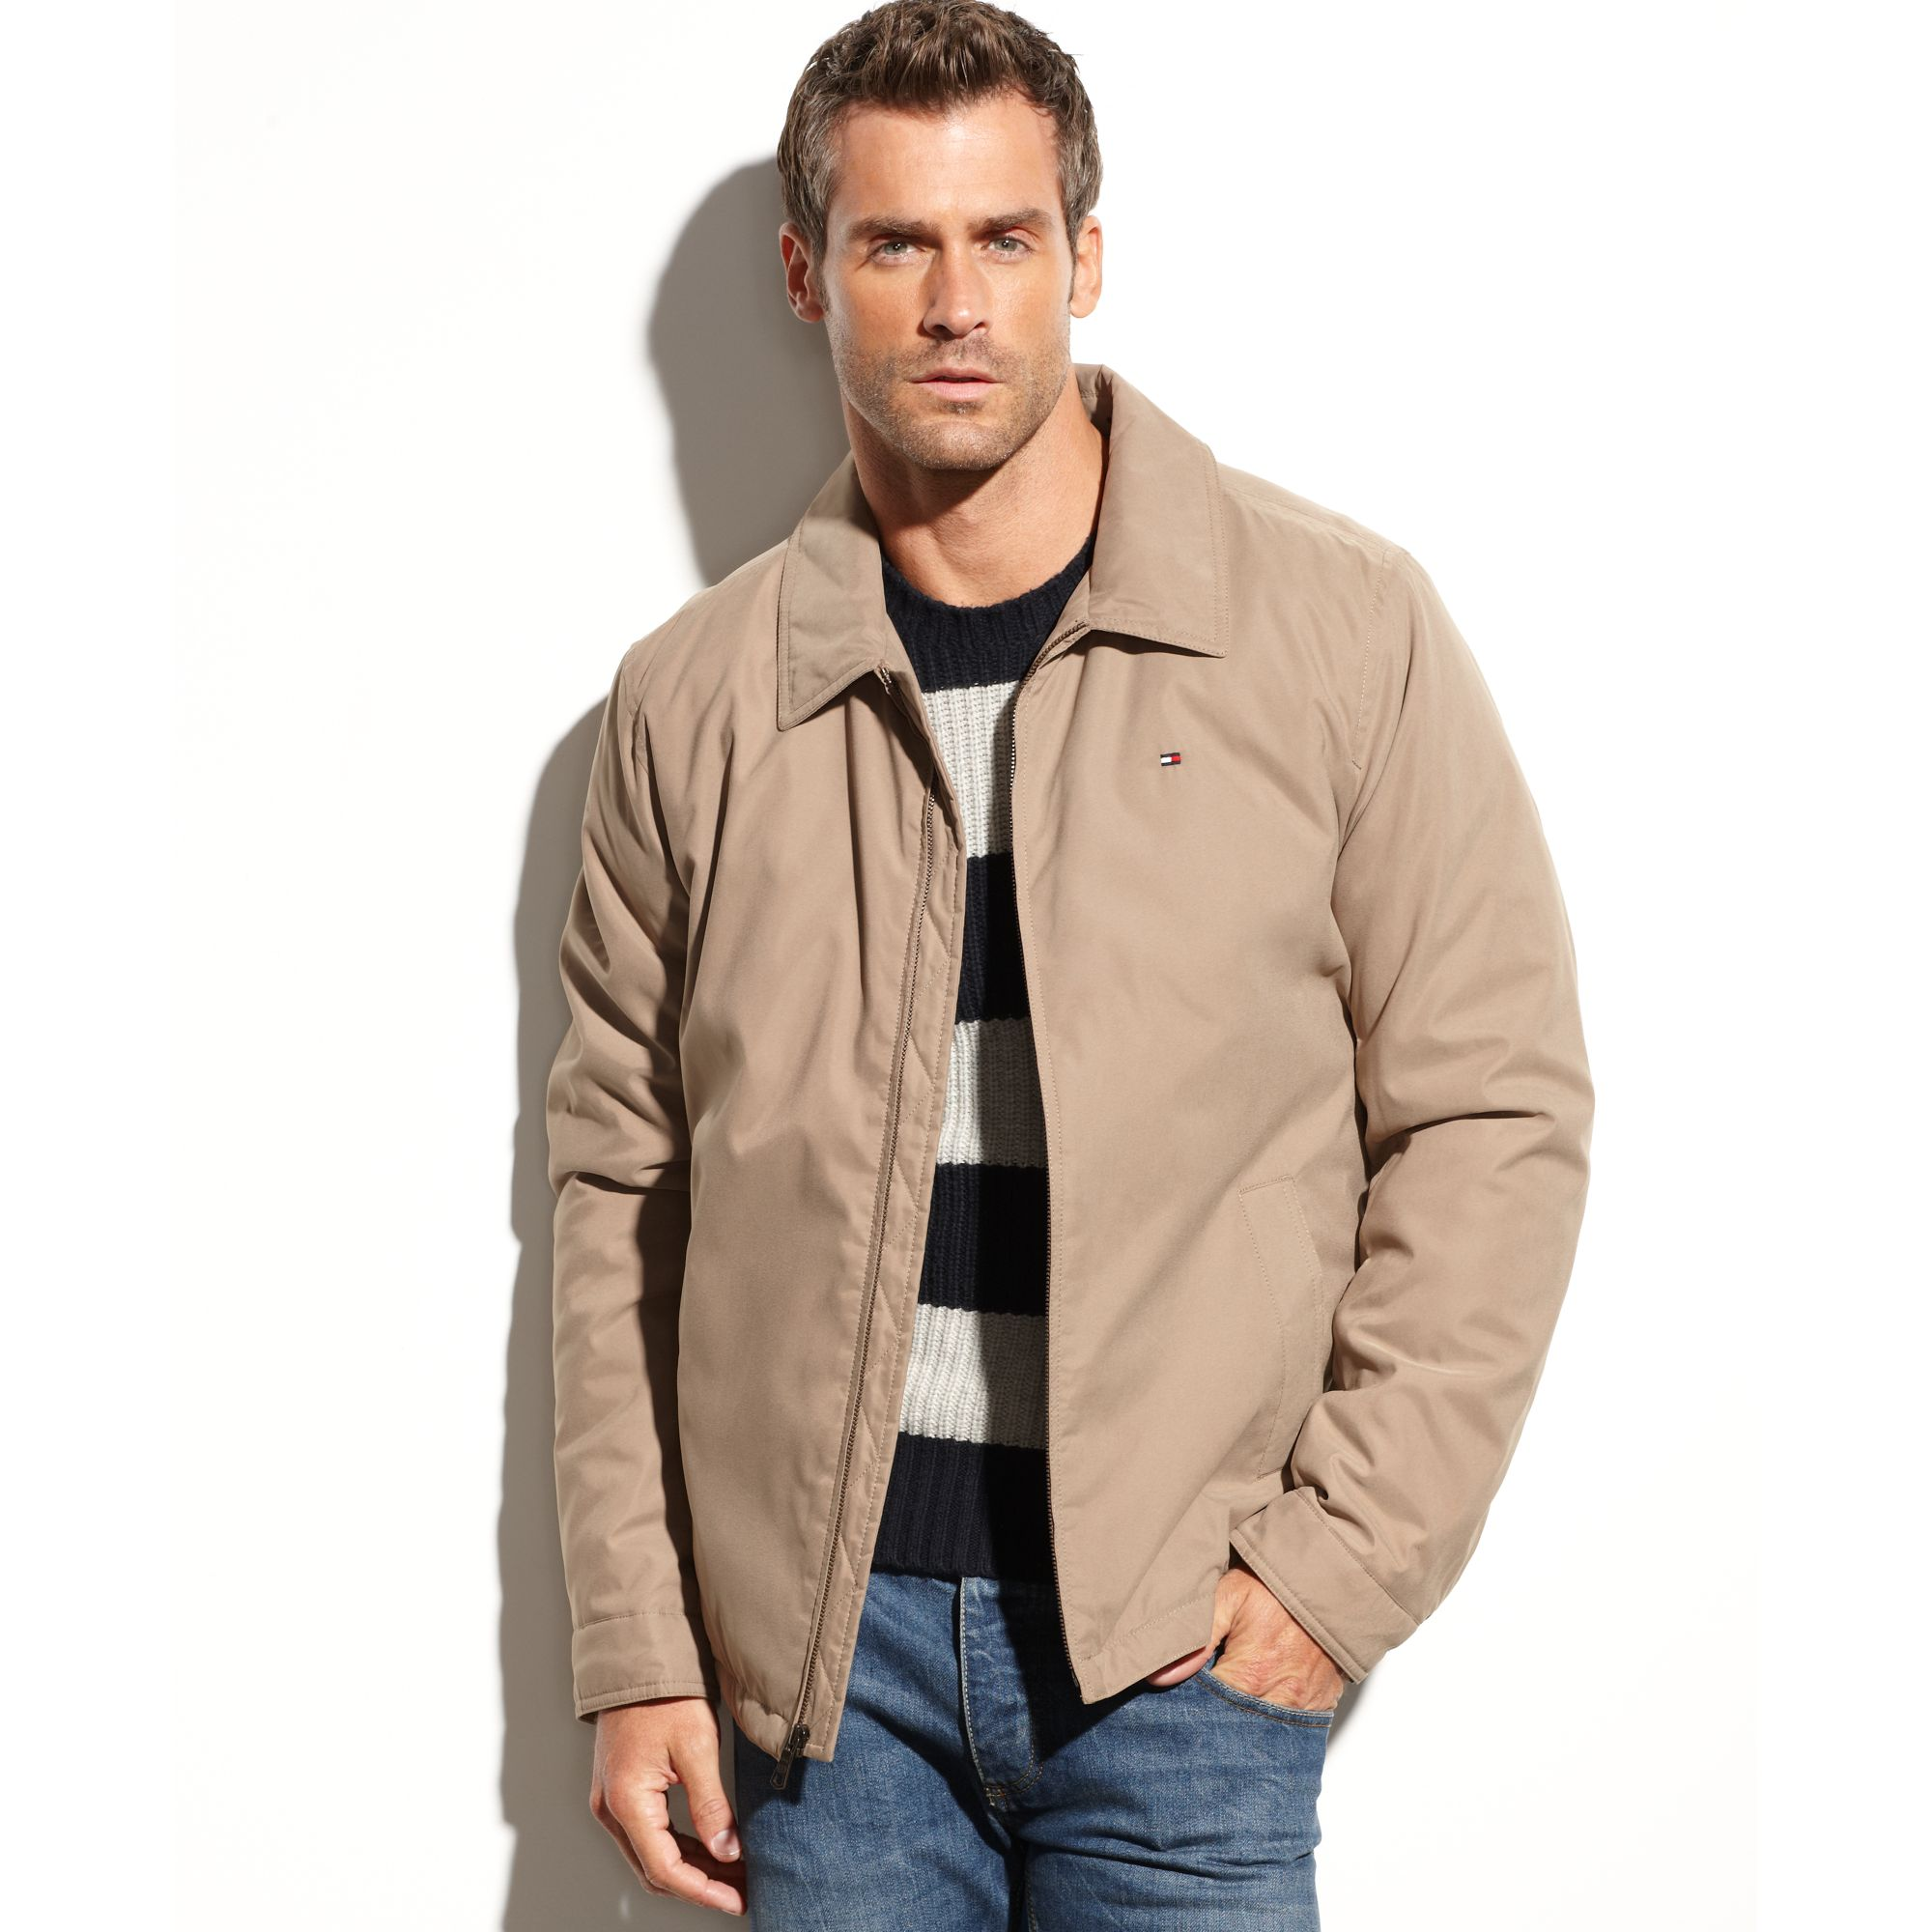 tommy hilfiger zipfront microtwill jacket in khaki for men lyst. Black Bedroom Furniture Sets. Home Design Ideas